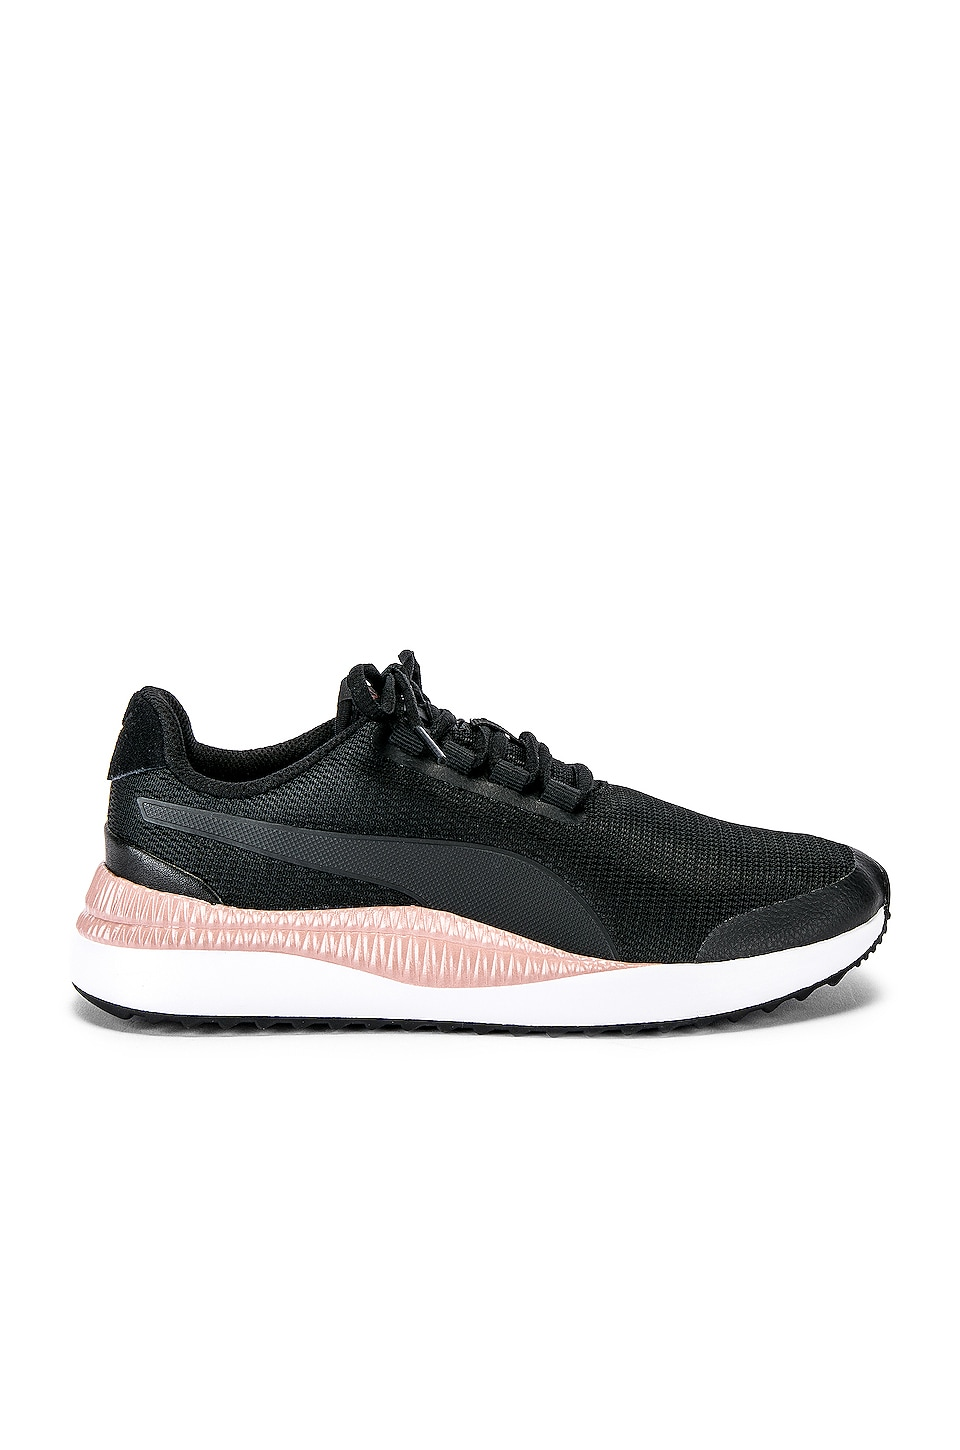 Puma SNEAKERS PACER NEXT FS